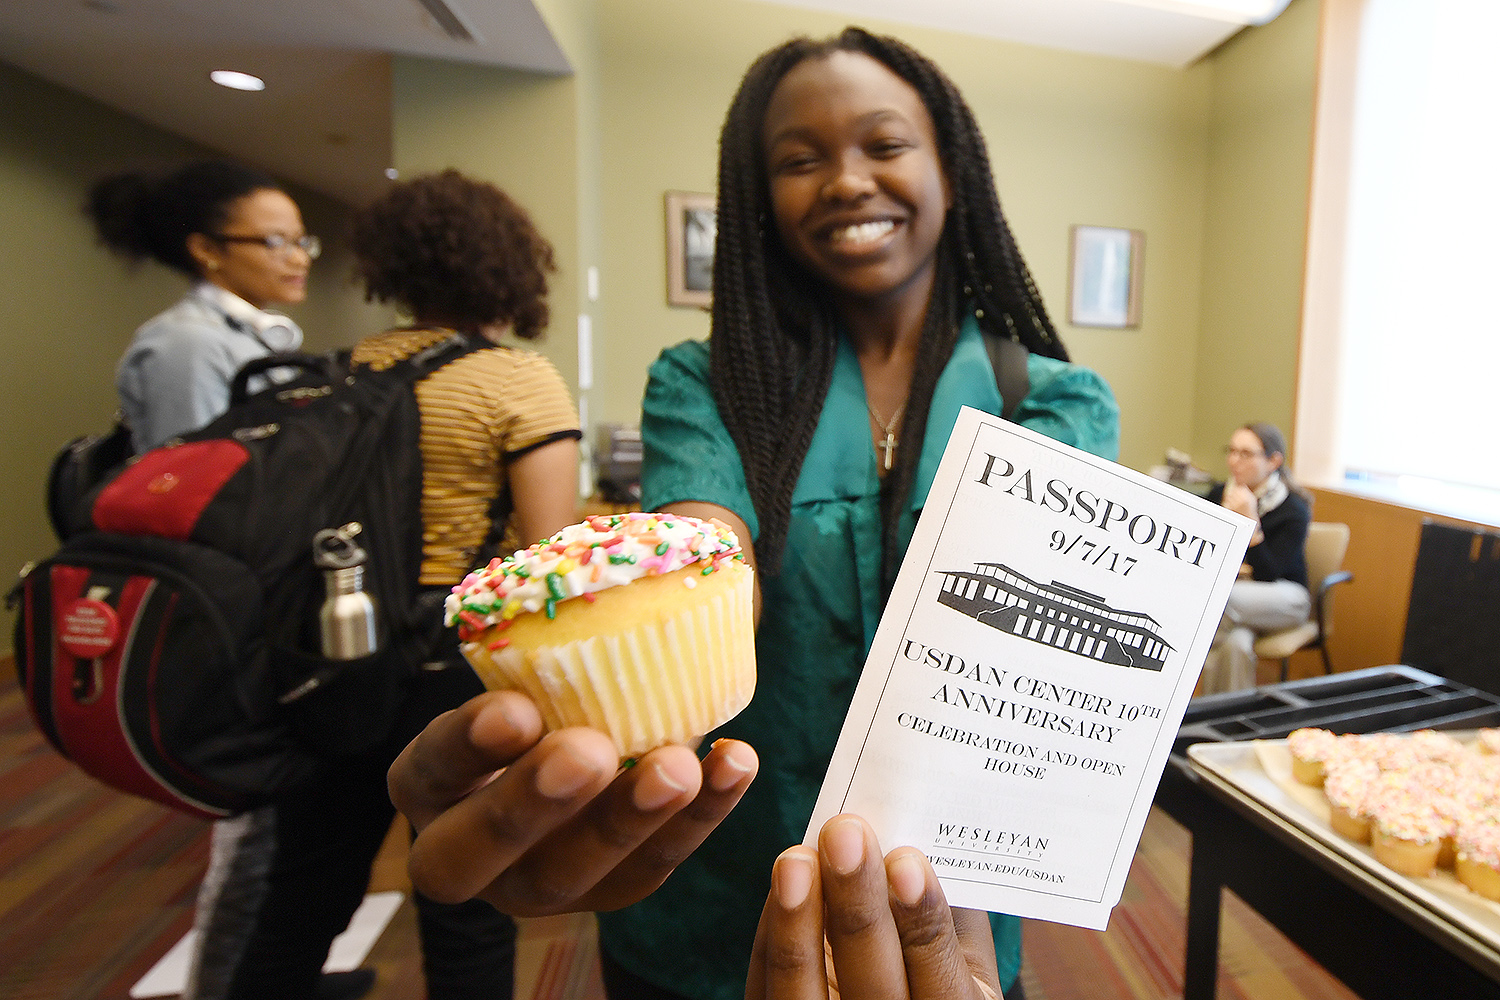 Students who visited the Usdan Administrative Offices were treated to a cupcake while getting their passport stamped.